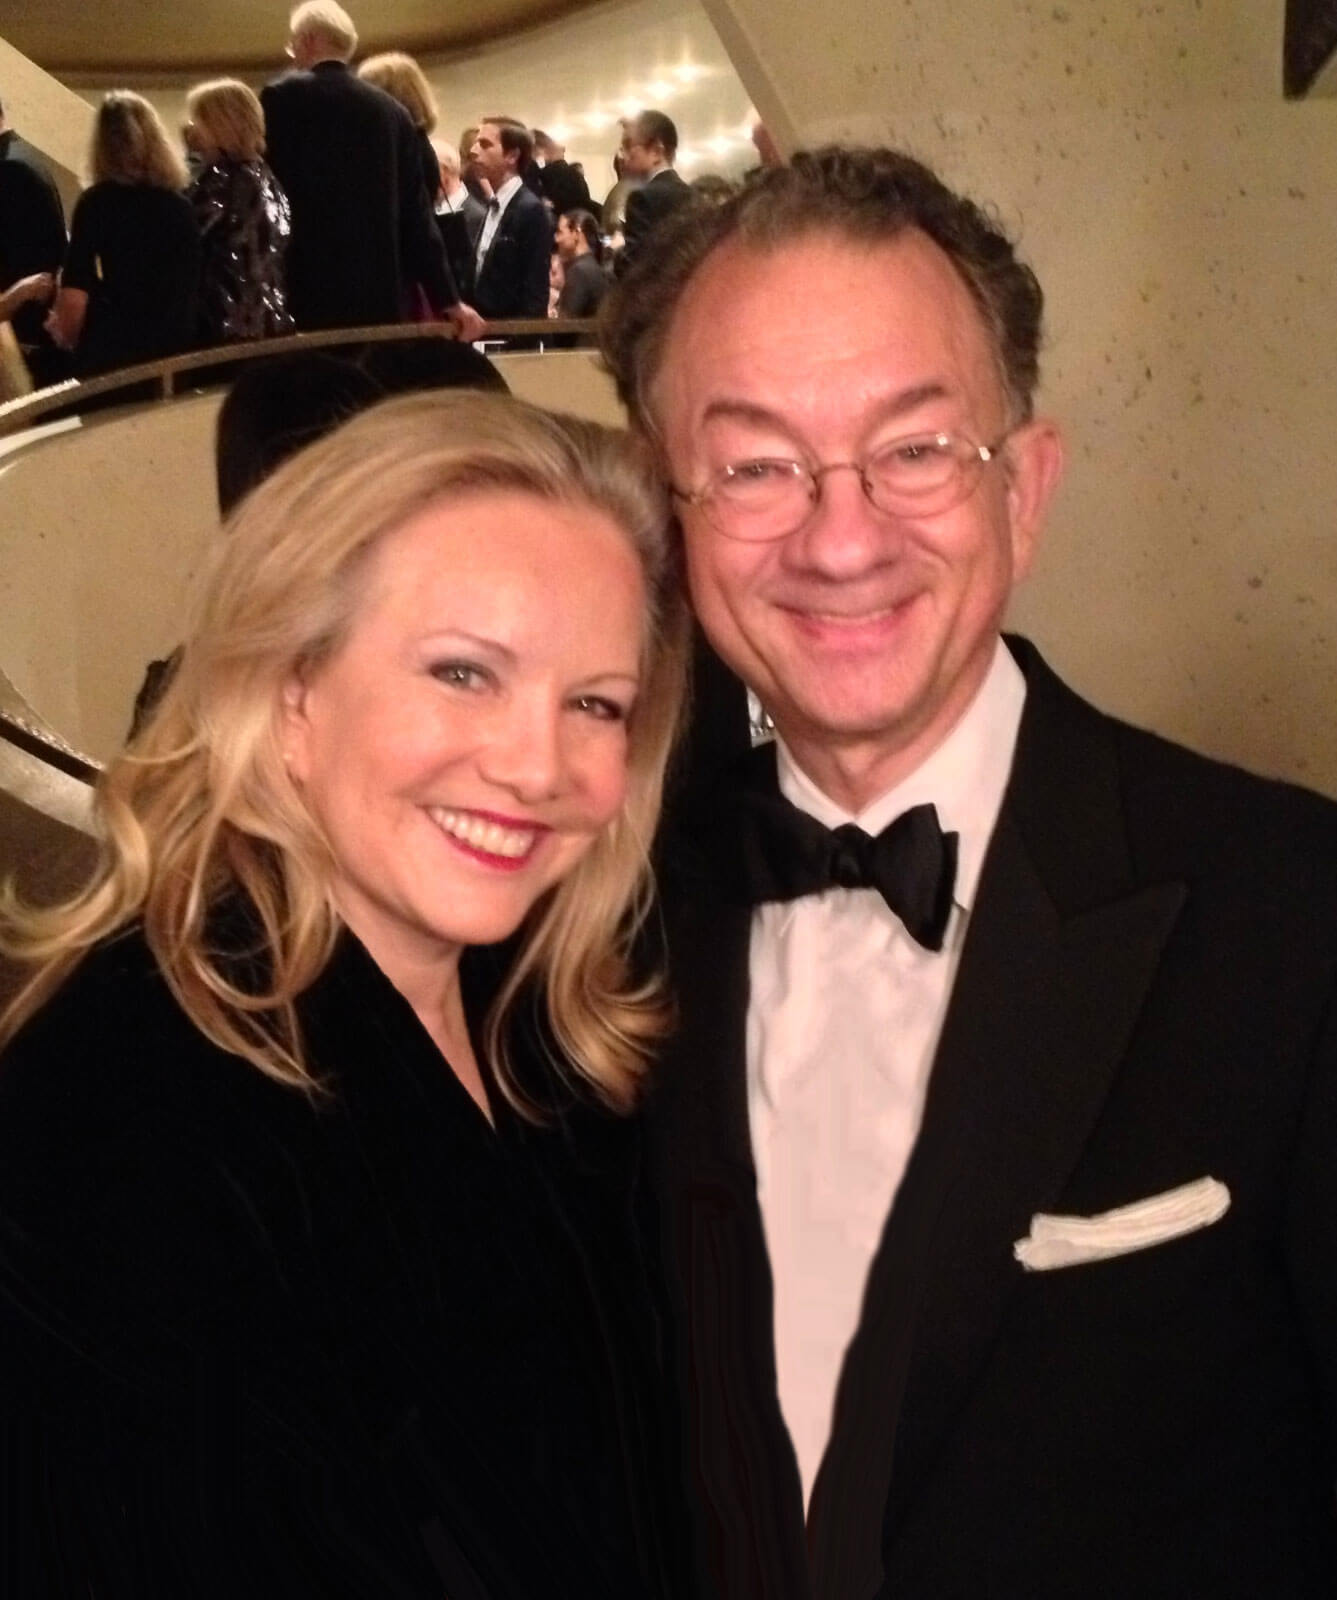 Susan Stroman with long-time collaborator, William Ivey Long. Both are in black tie and audience members can be seen in the background entering or exiting a performance.